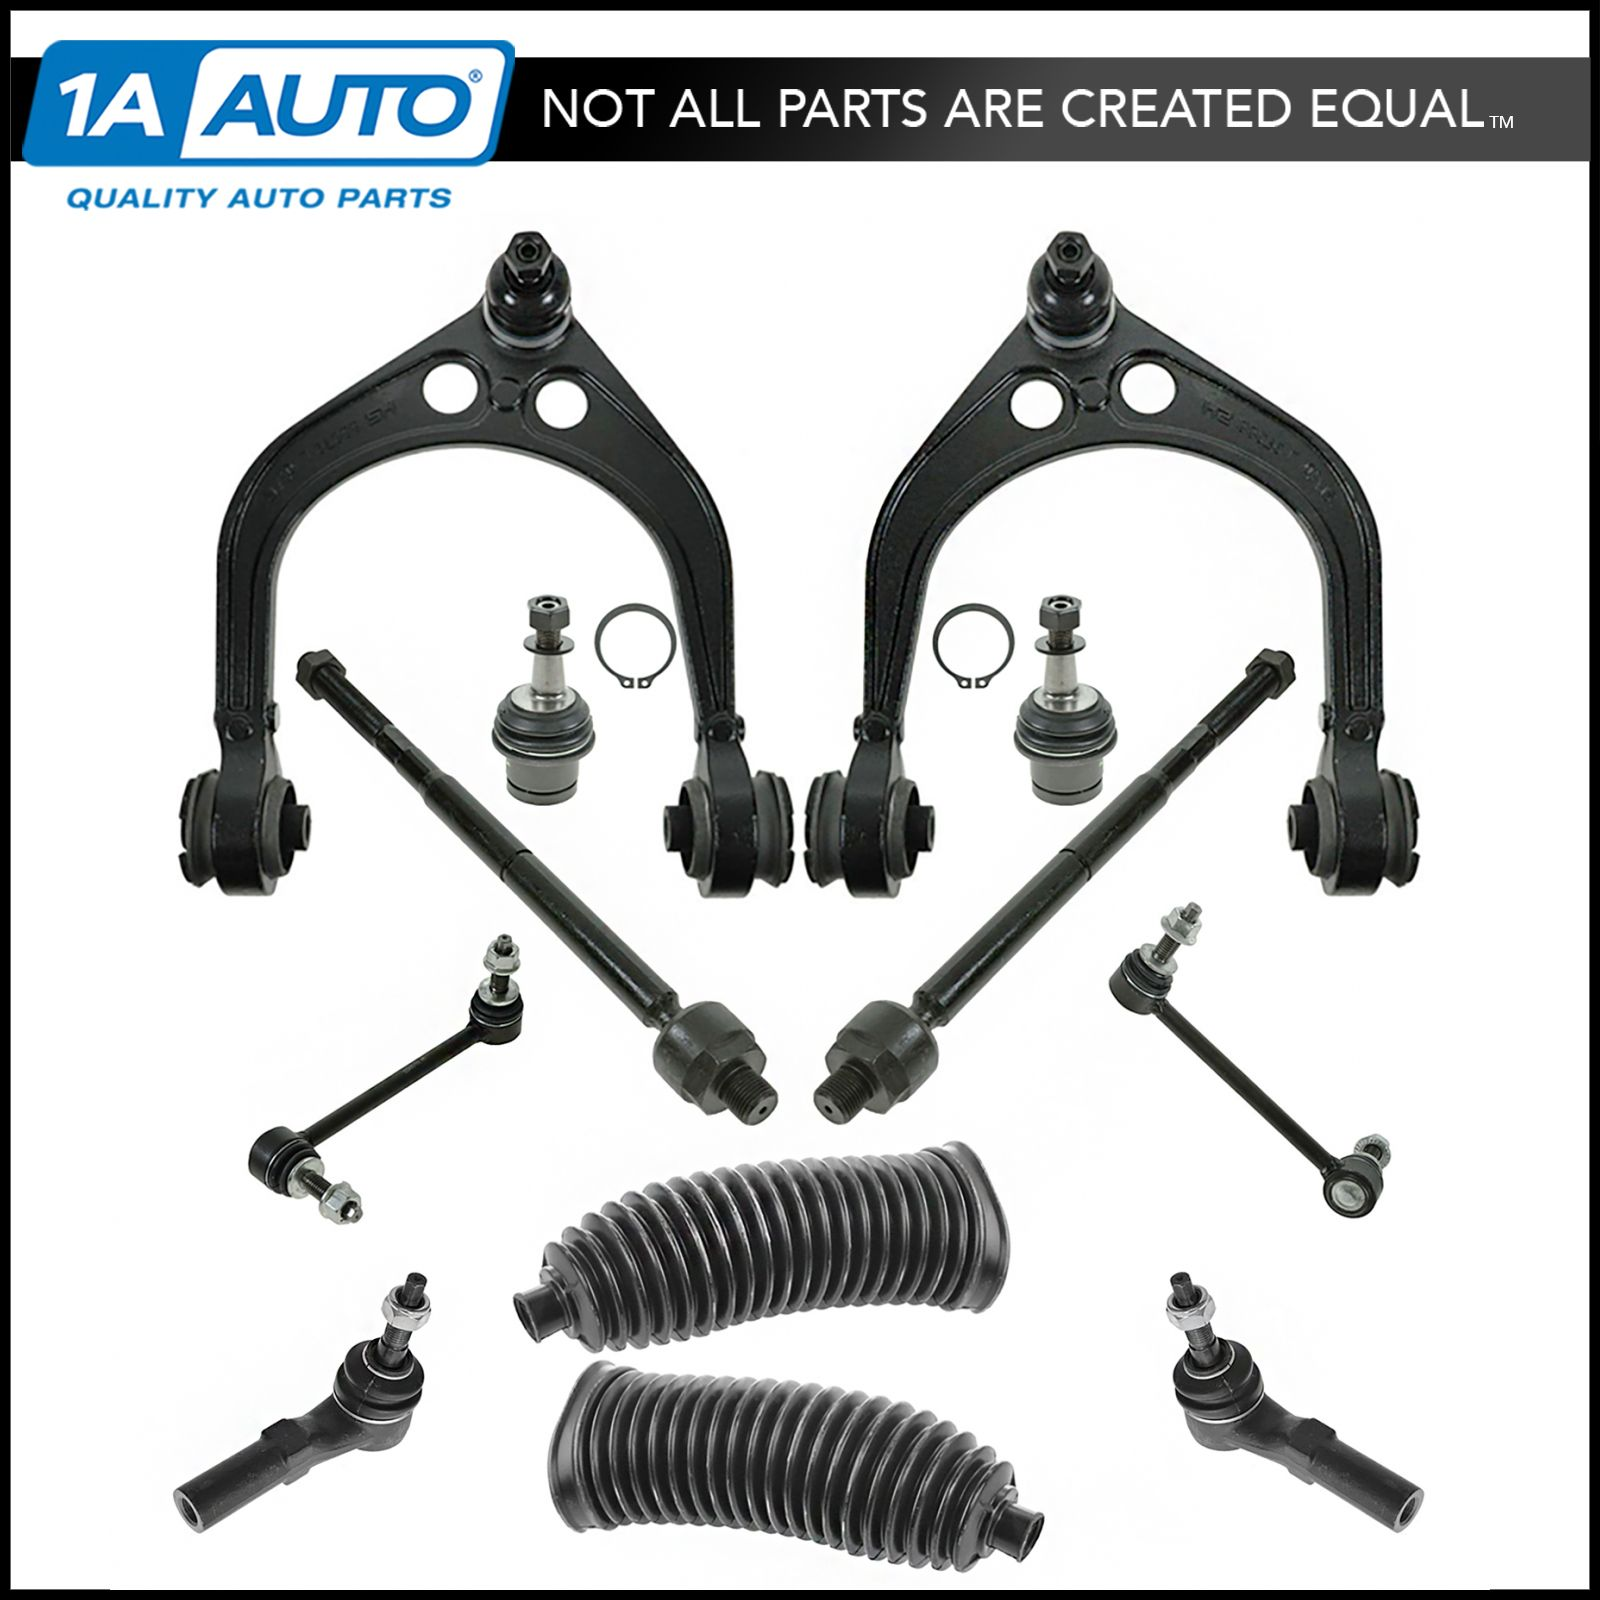 Brand New 2 Front Outer Tie Rod End Link Steering Kit Fits 2005-10 Chrysler 300